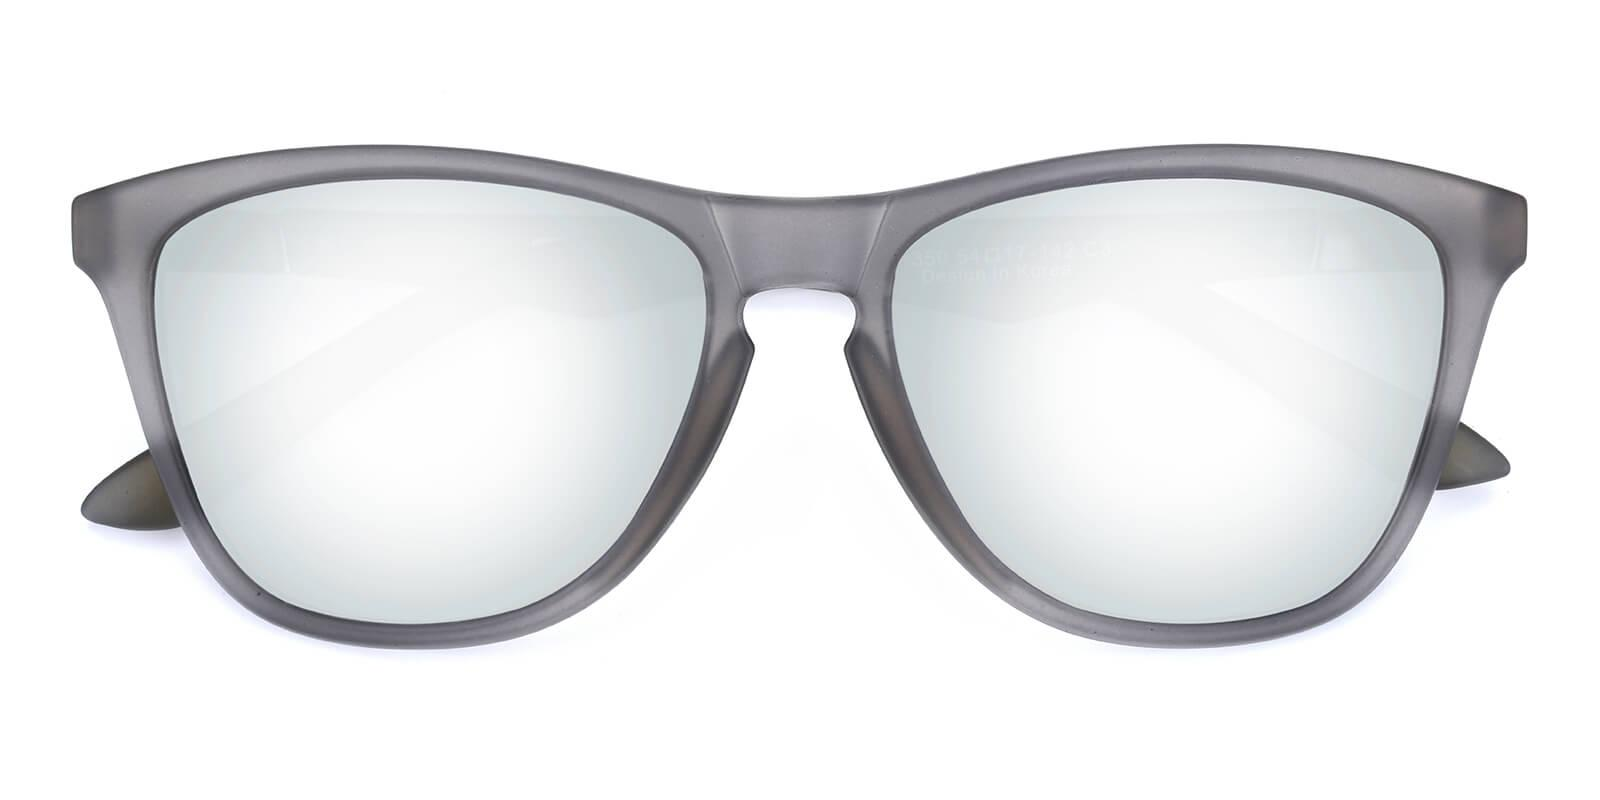 Belarus-Gray-Square-TR-Sunglasses-detail